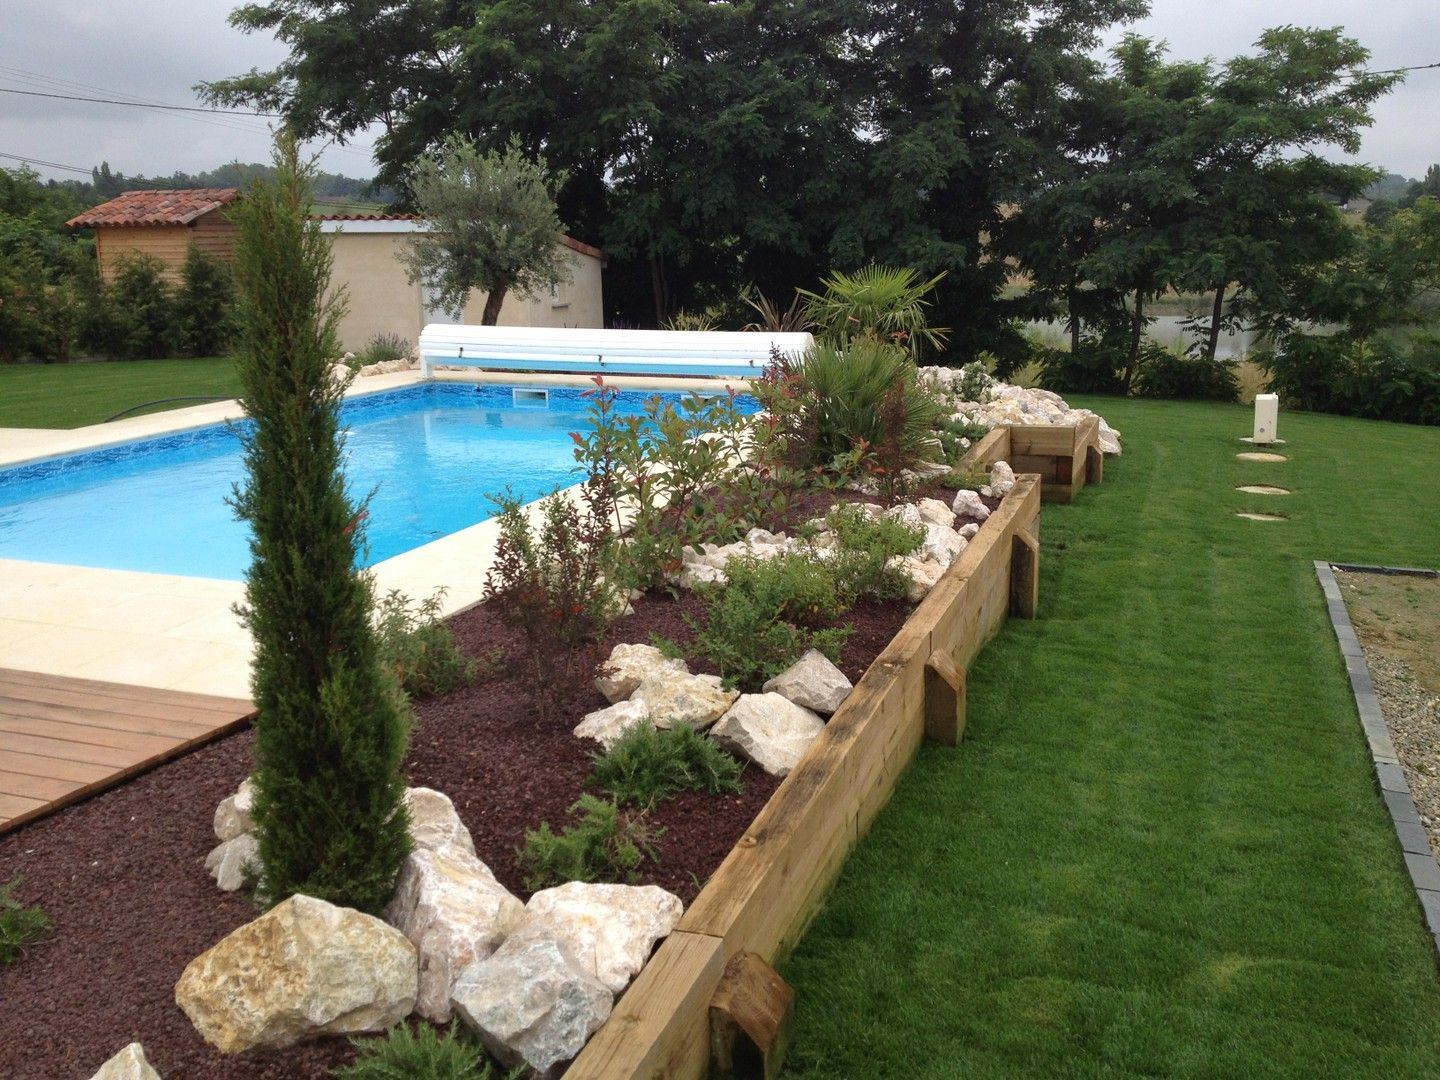 Aménagement Tour De Piscine Garden Pondpools Pinterest - Photo d amenagement piscine